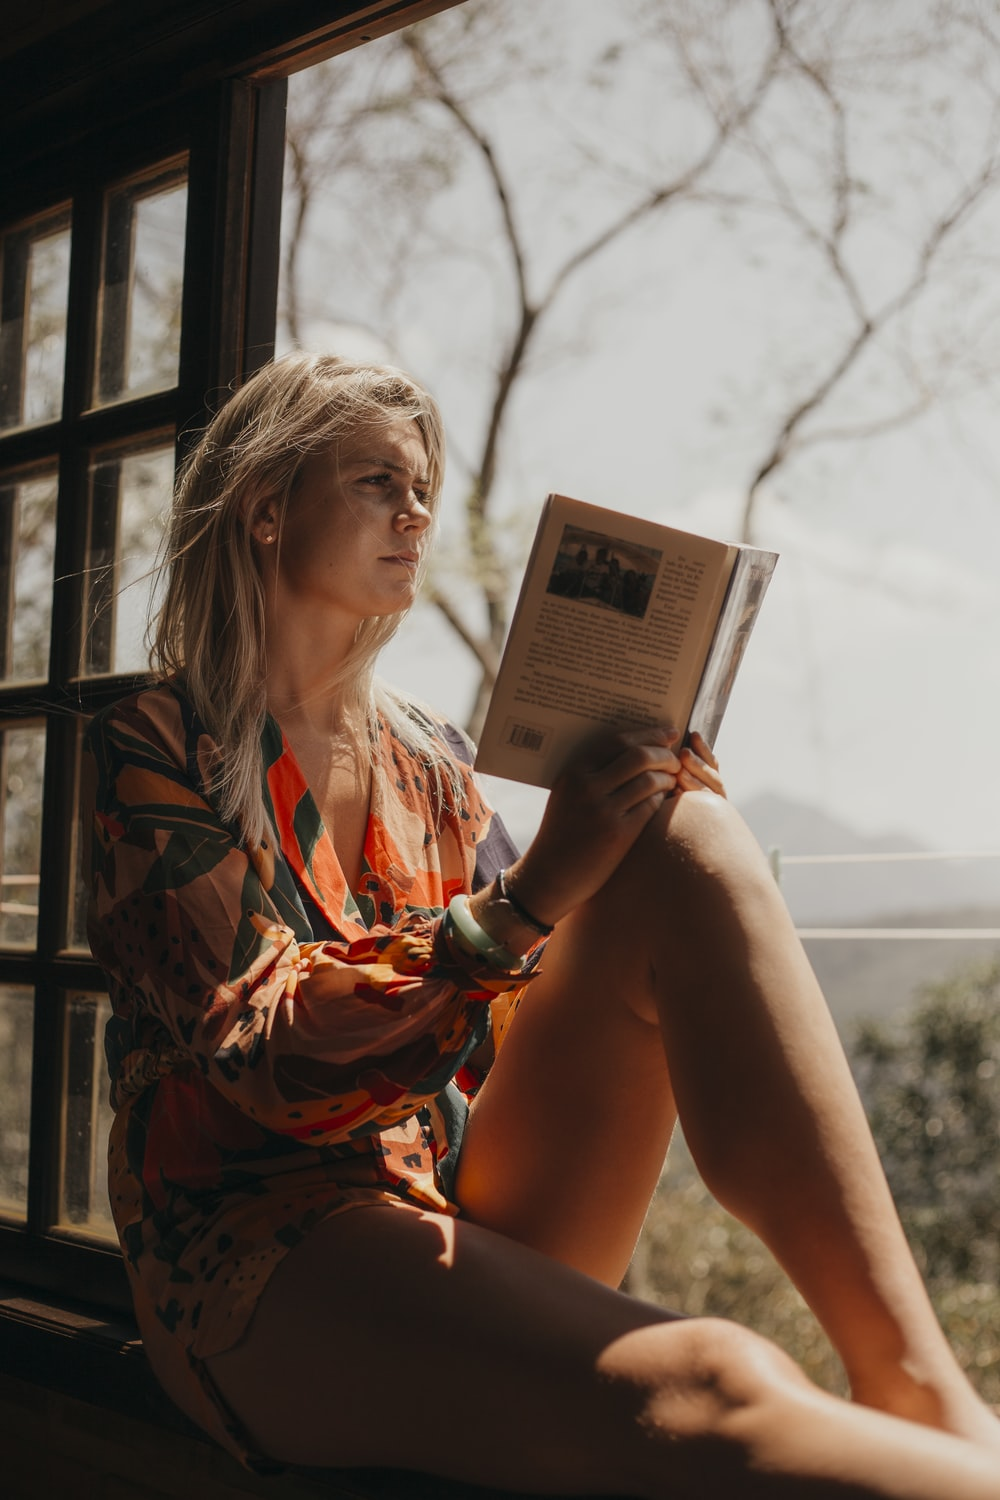 woman in orange and black dress reading book